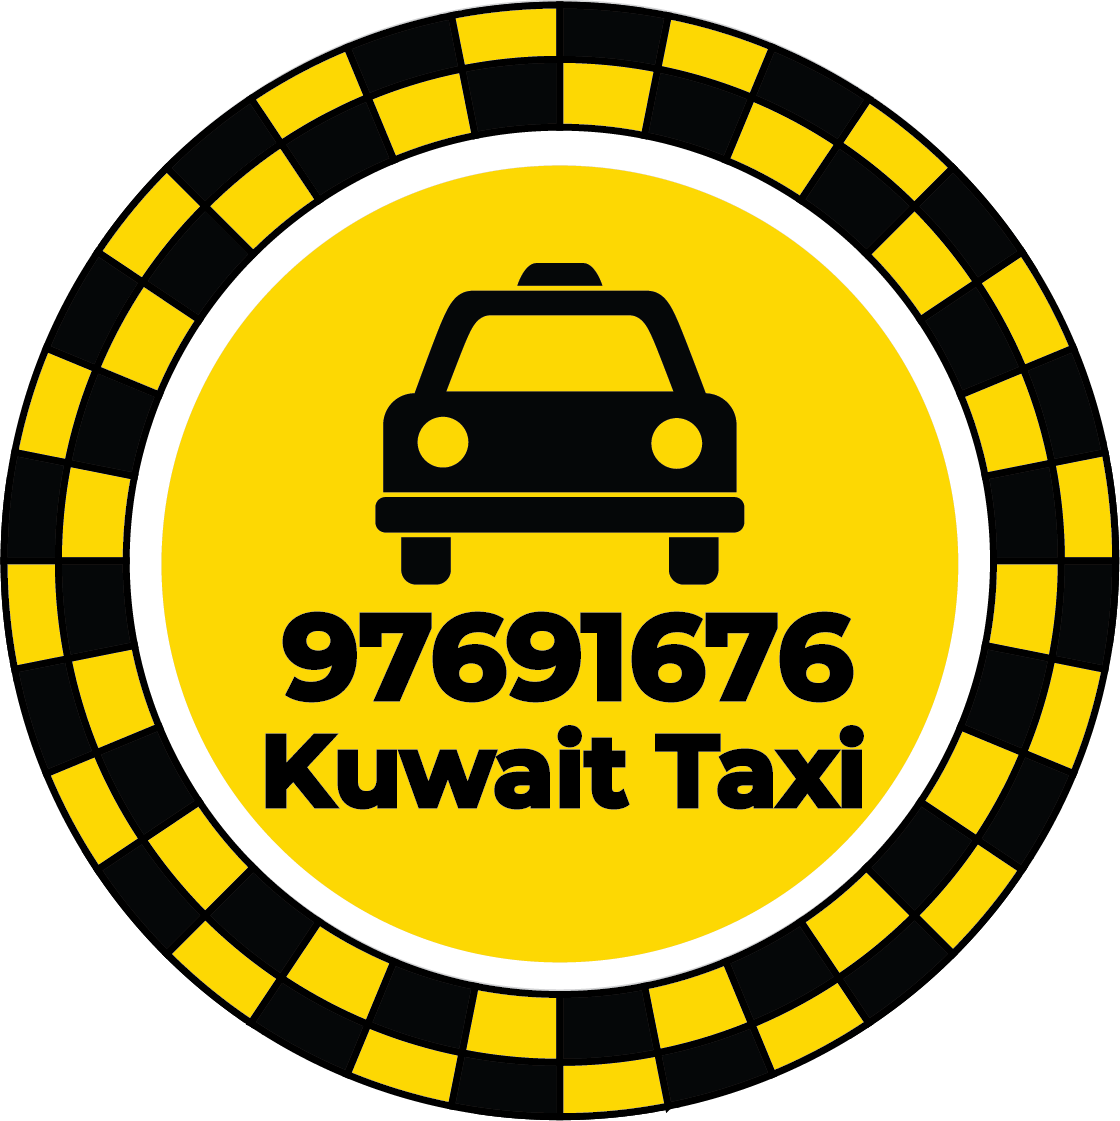 Taxi in Kuwait - Kuwait Taxi Service